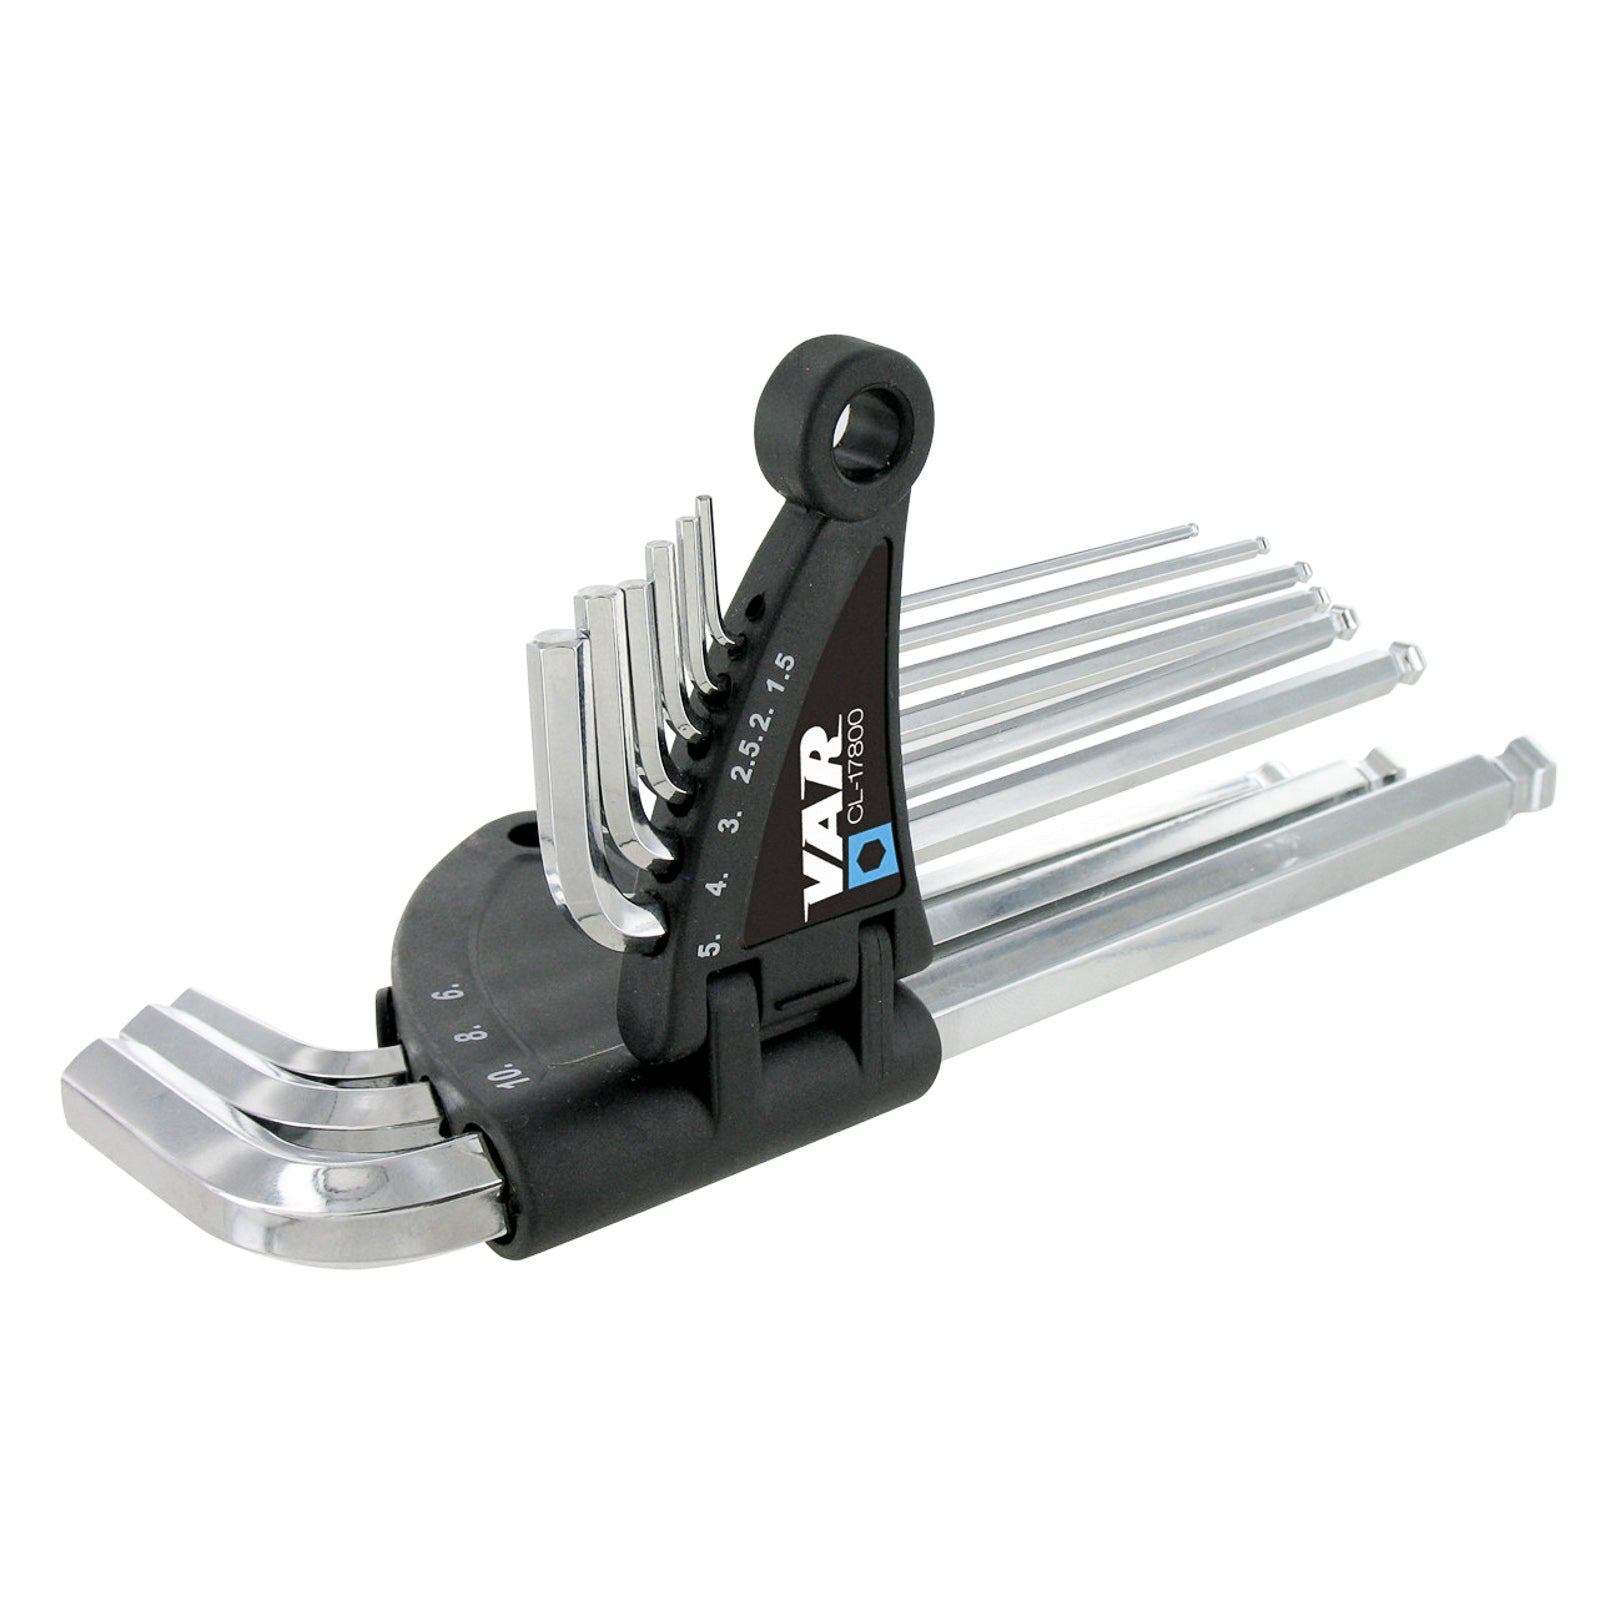 VAR Professional Hex Wrench Set